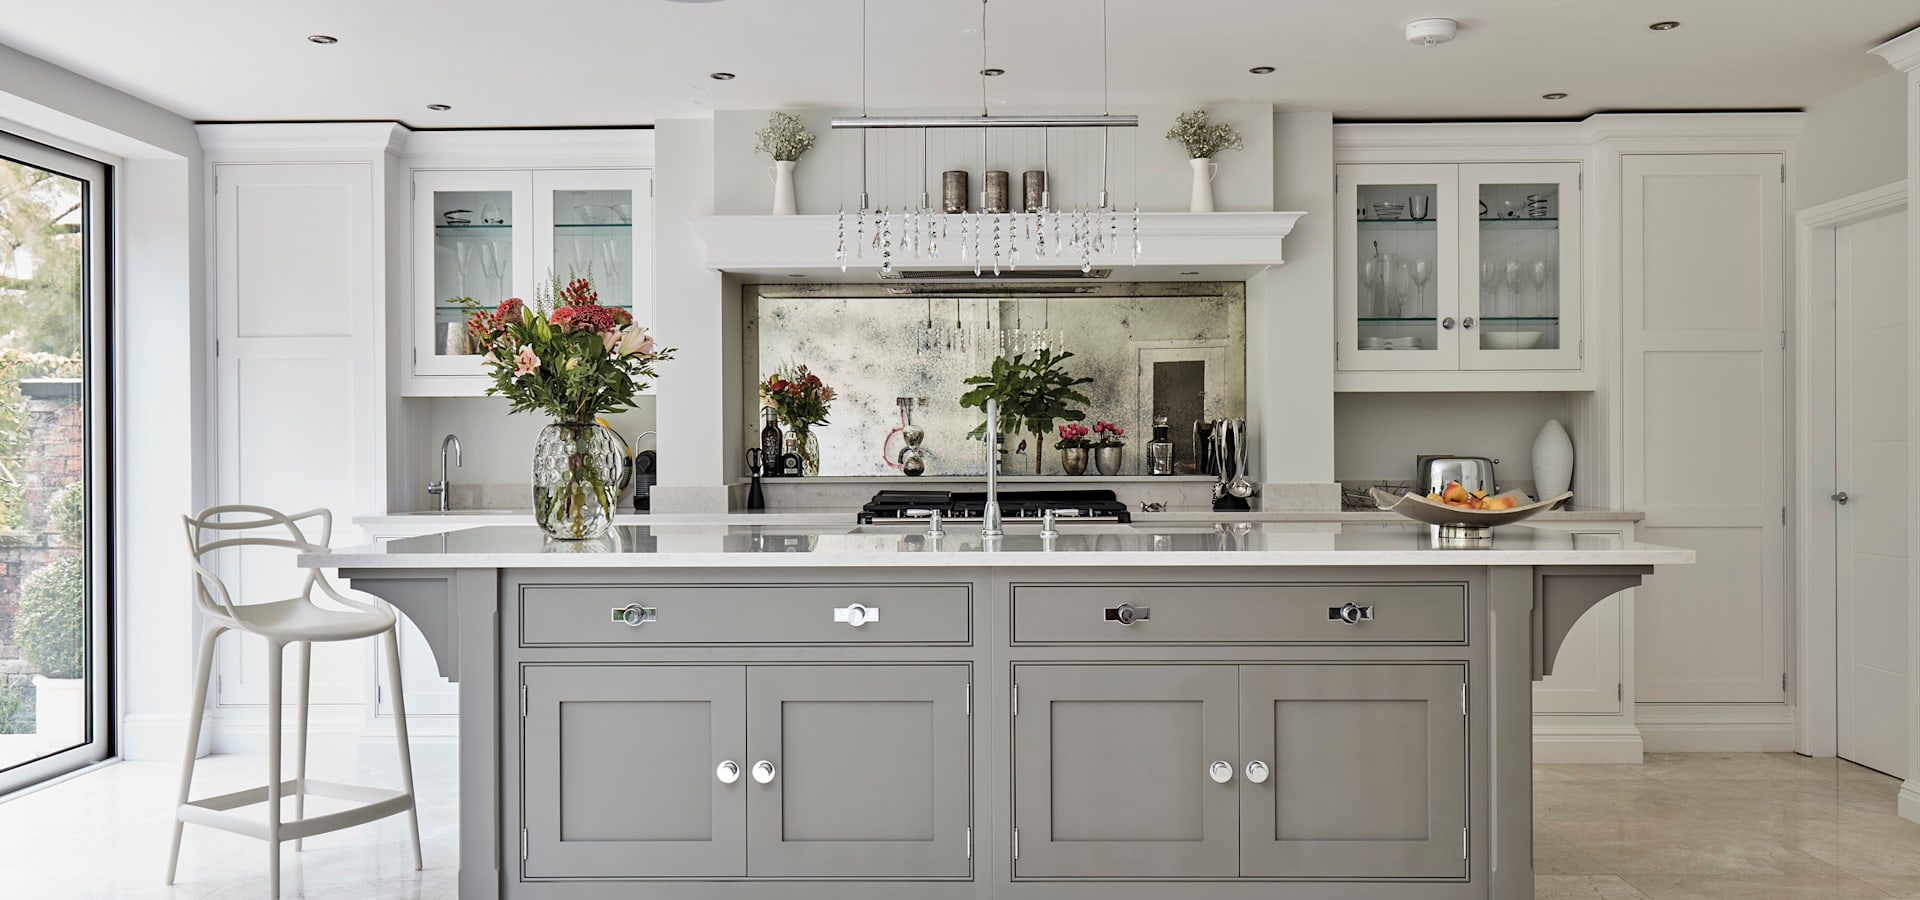 Tom Howley Kitchens Reviews